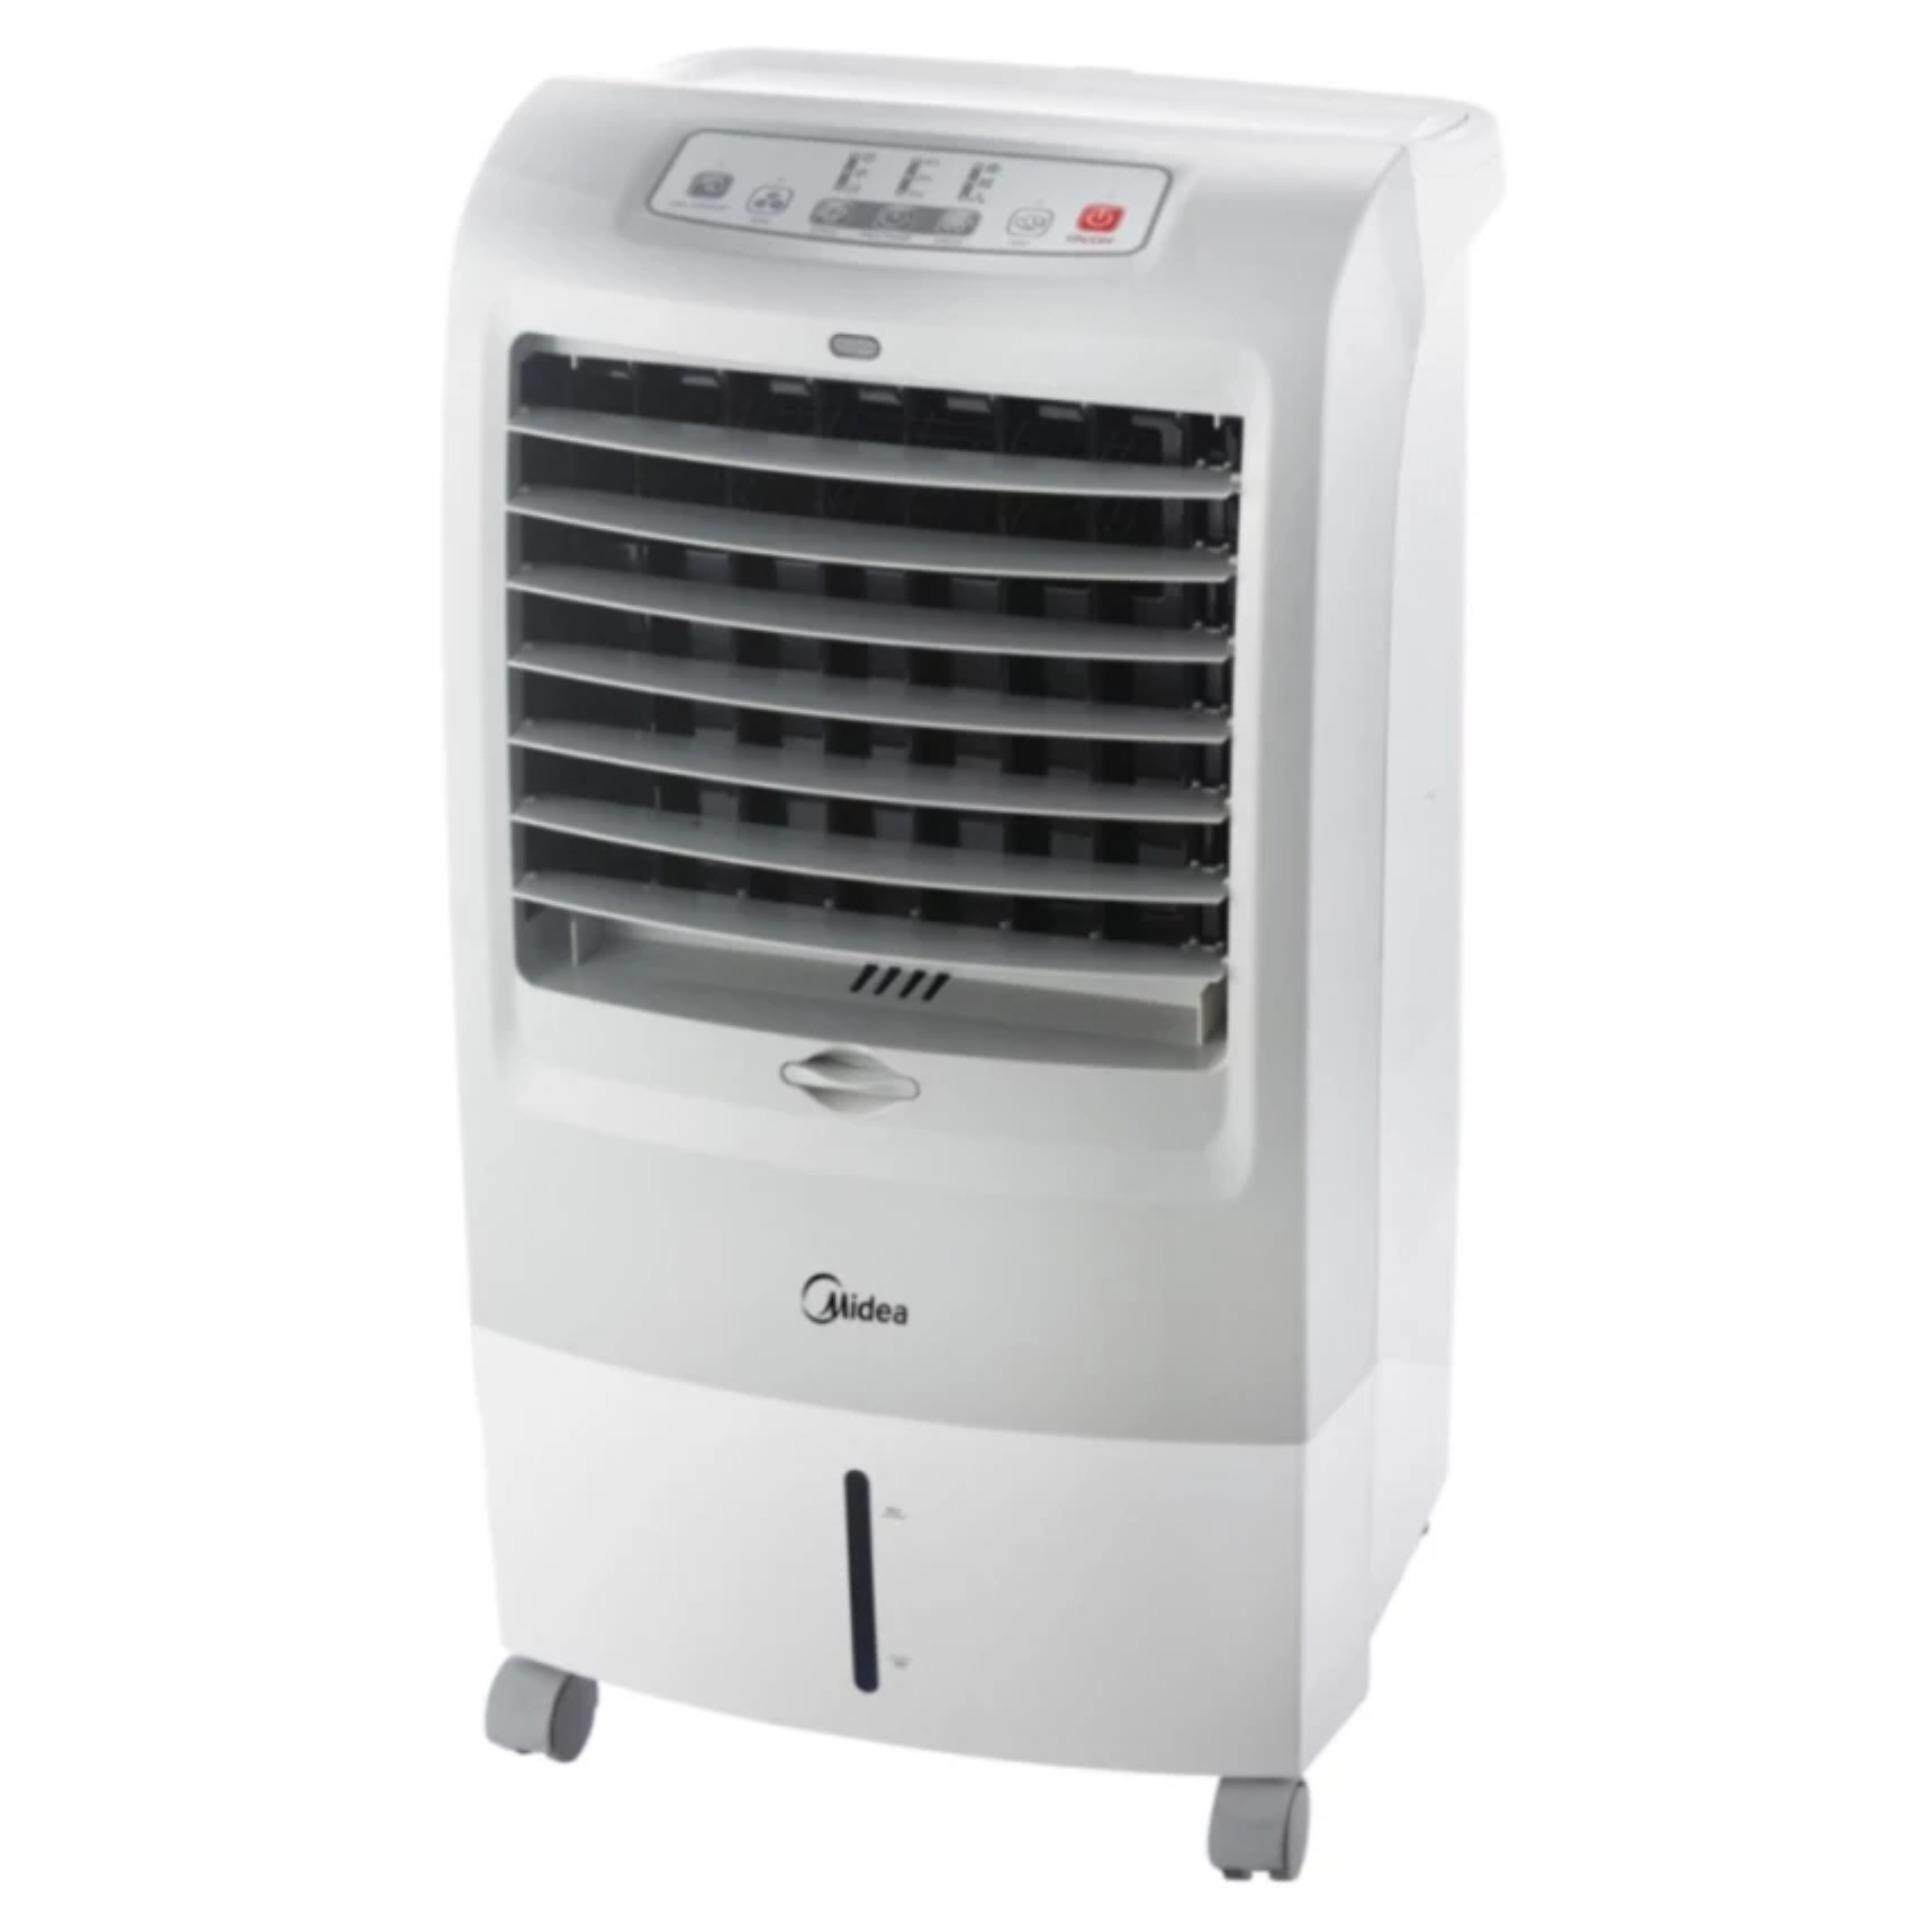 Air Conditioner Buy At Best Price In Malaysia How Much Does Circuit Board Cost Conditioning Midea Ionizer Cooler15l With Remote Control Mac 215f